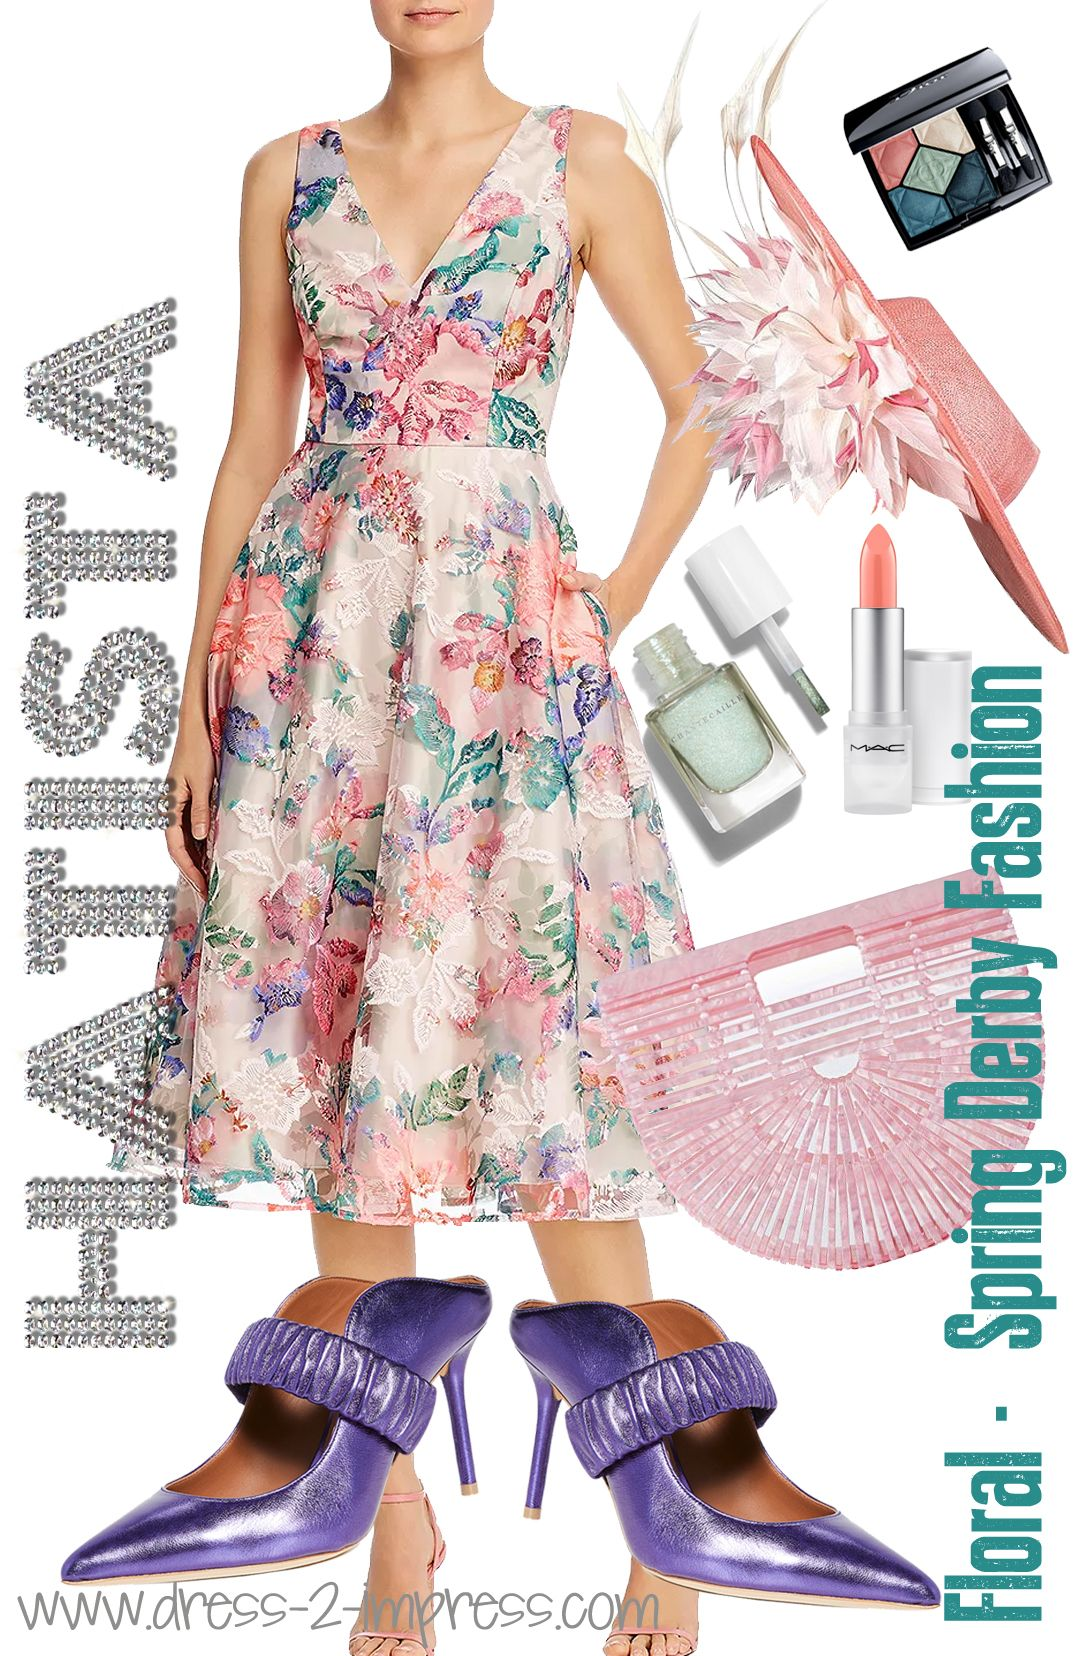 What To Wear To A Spring Wedding 2020 Spring Wedding Guest Outfits 2020 Mother Of The In 2020 Spring Fashion Outfits Kentucky Derby Dress Wedding Guest Outfit Spring